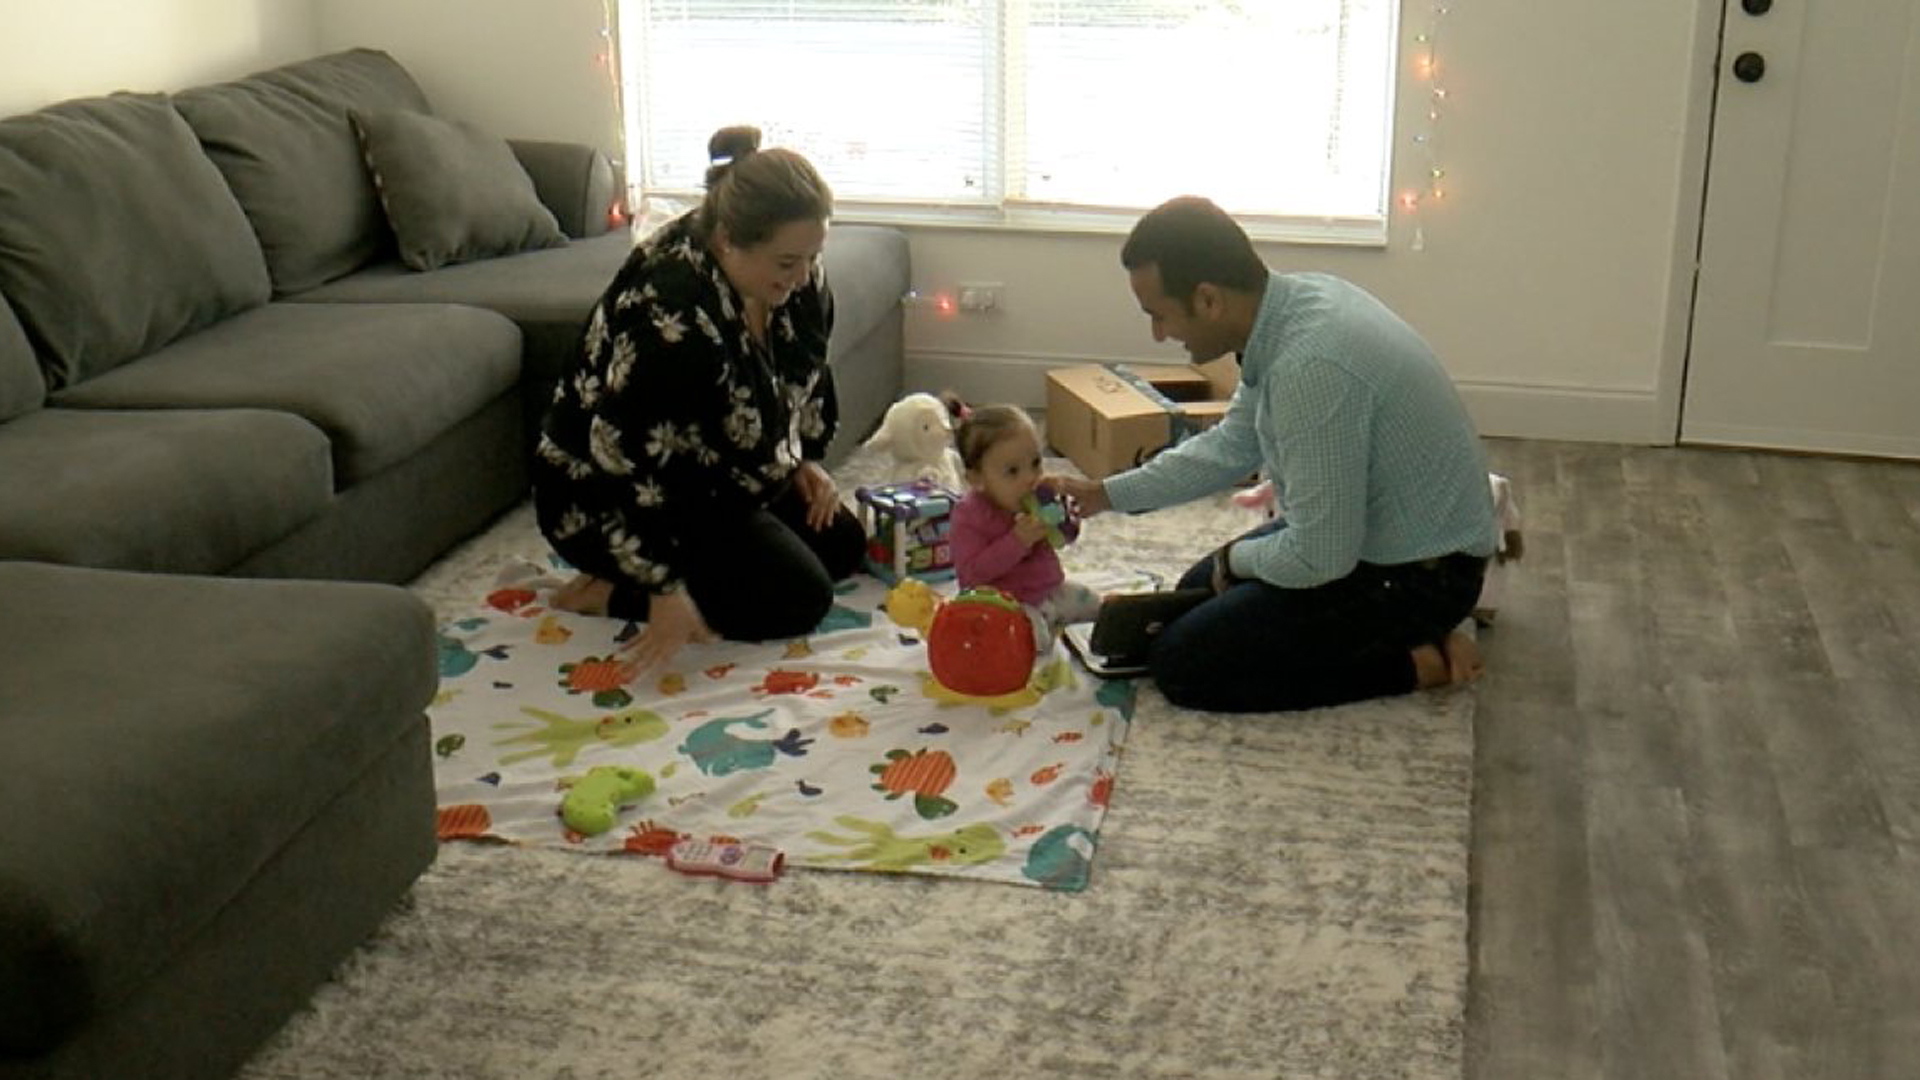 The Saleep family is seen in their Tampa, Florida, home on Dec. 4, 2019. (Credit: WFTS)